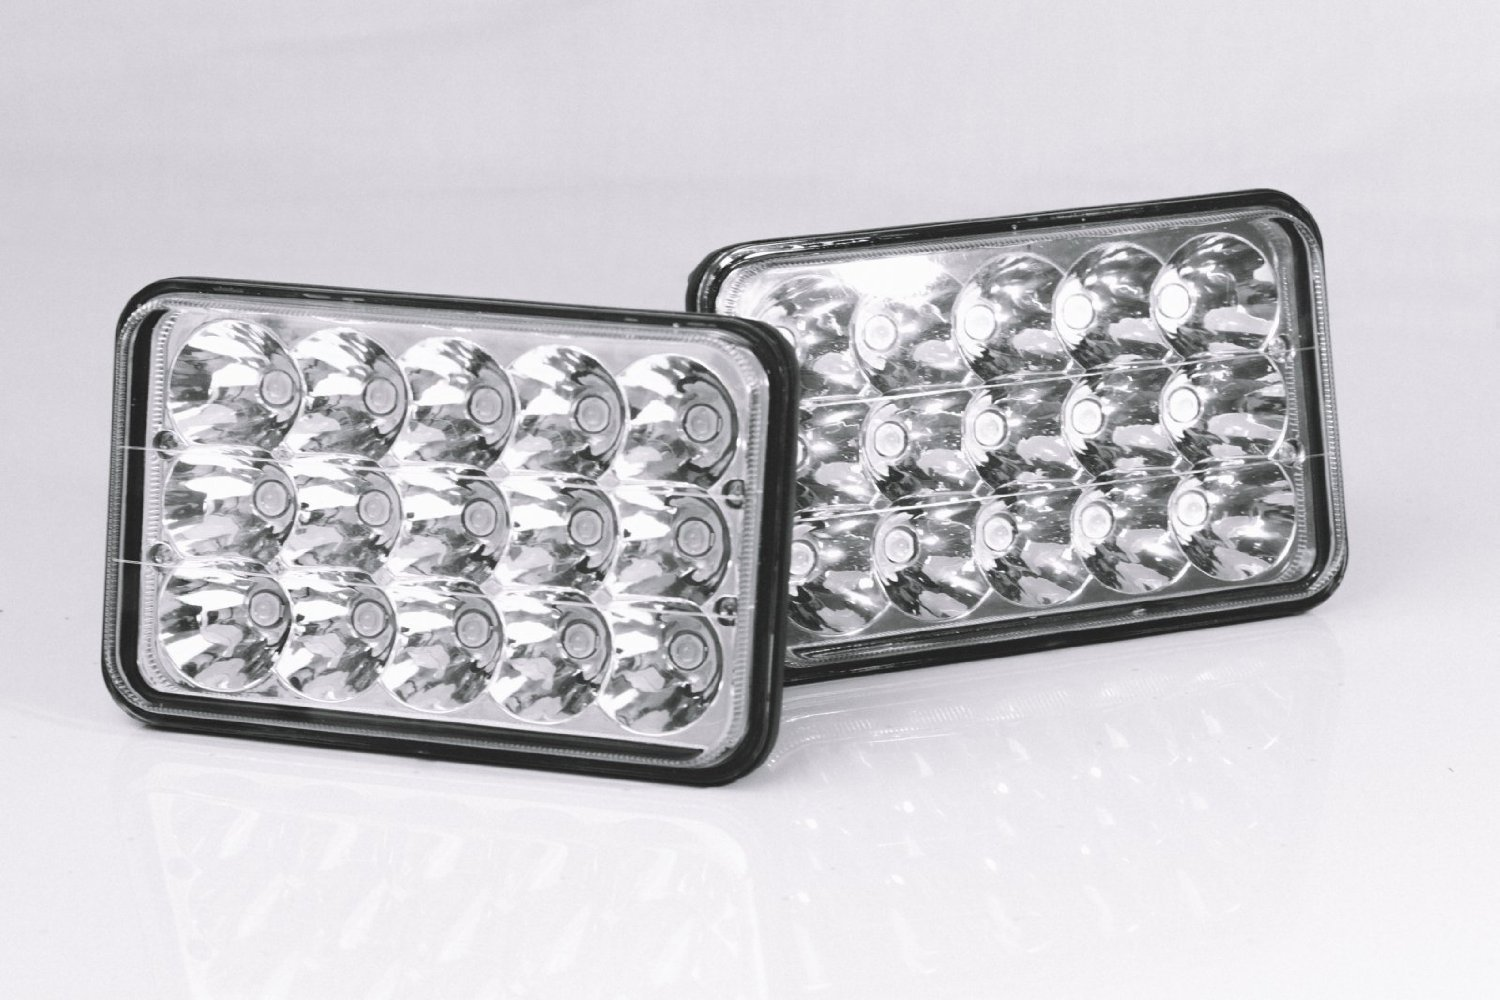 Led Headlights Sealed Beam Tractor : Cree led headlight bulb sealed beam crystal clear